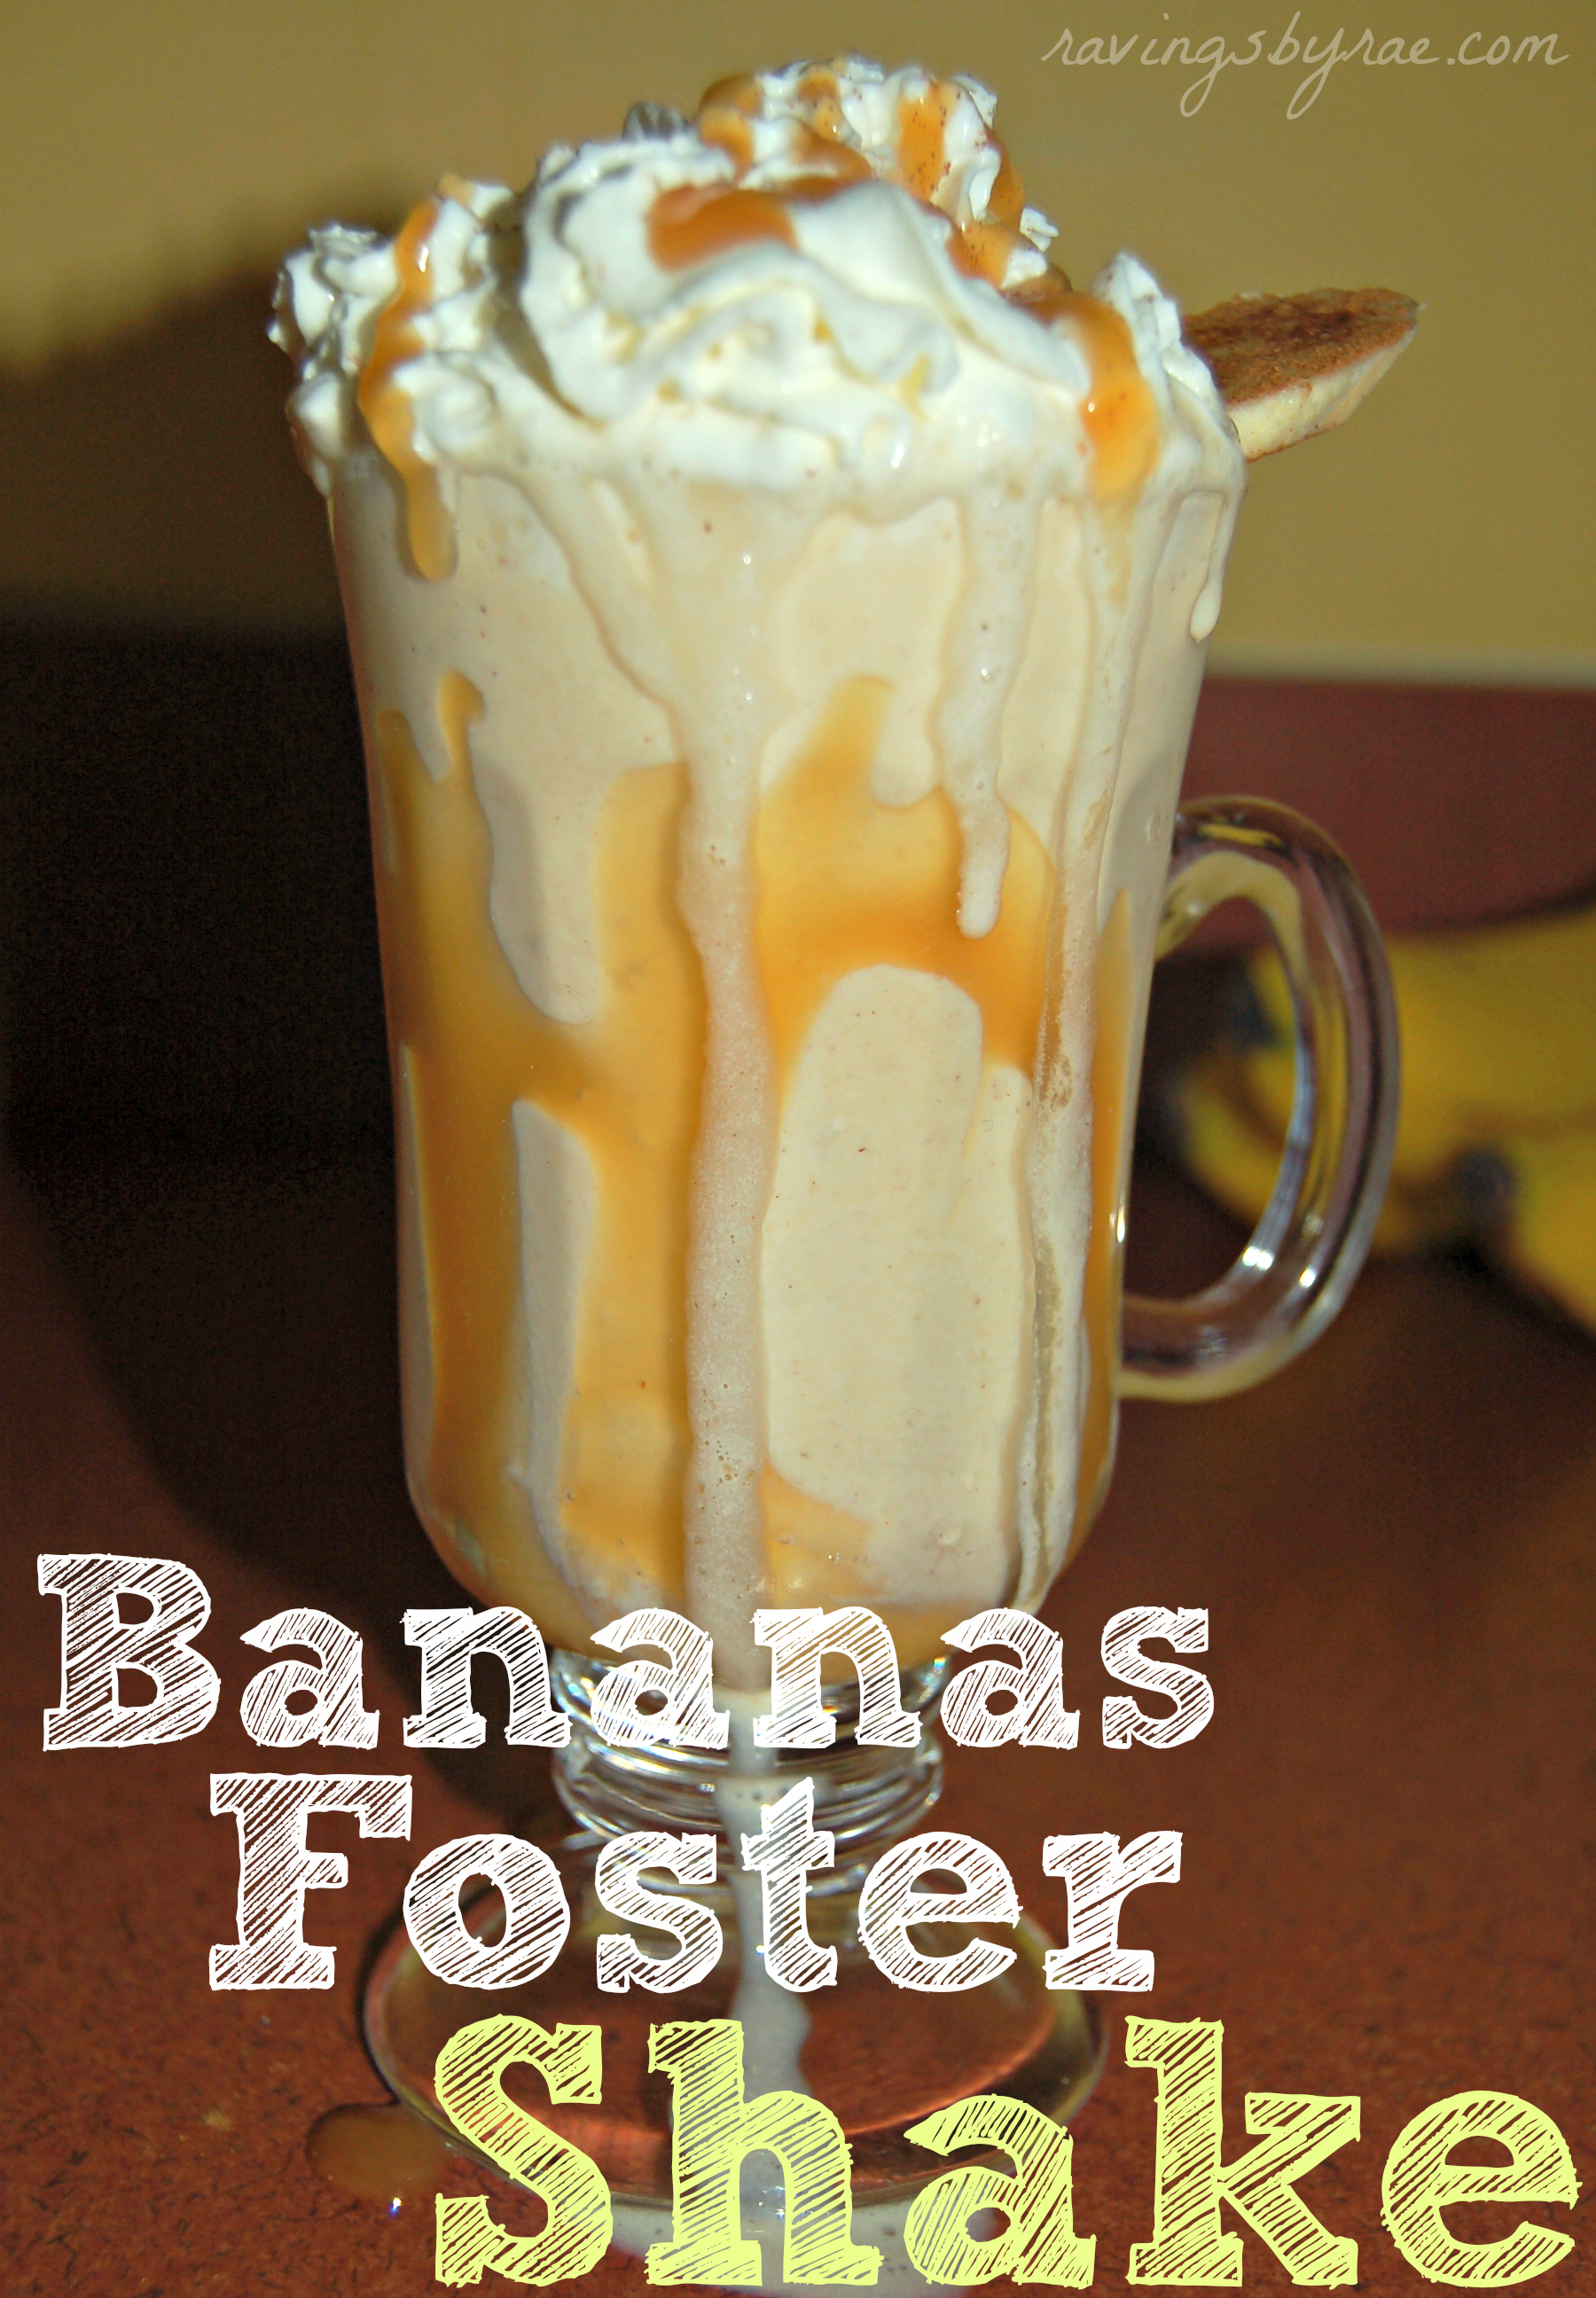 foster basic bananas foster bananas foster french toast bananas foster ...